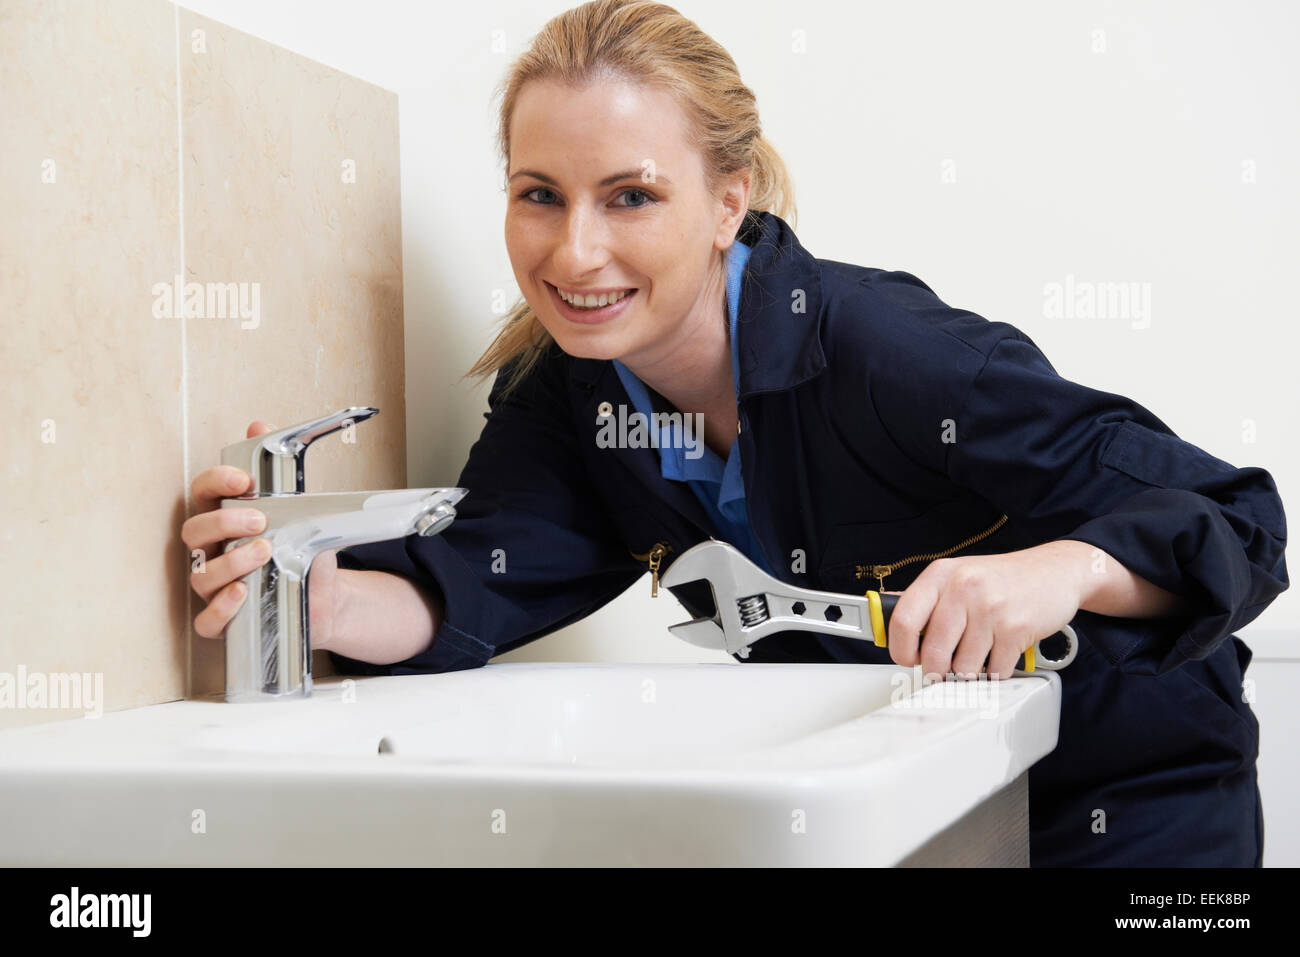 Leaky Tap Stock Photos & Leaky Tap Stock Images - Alamy